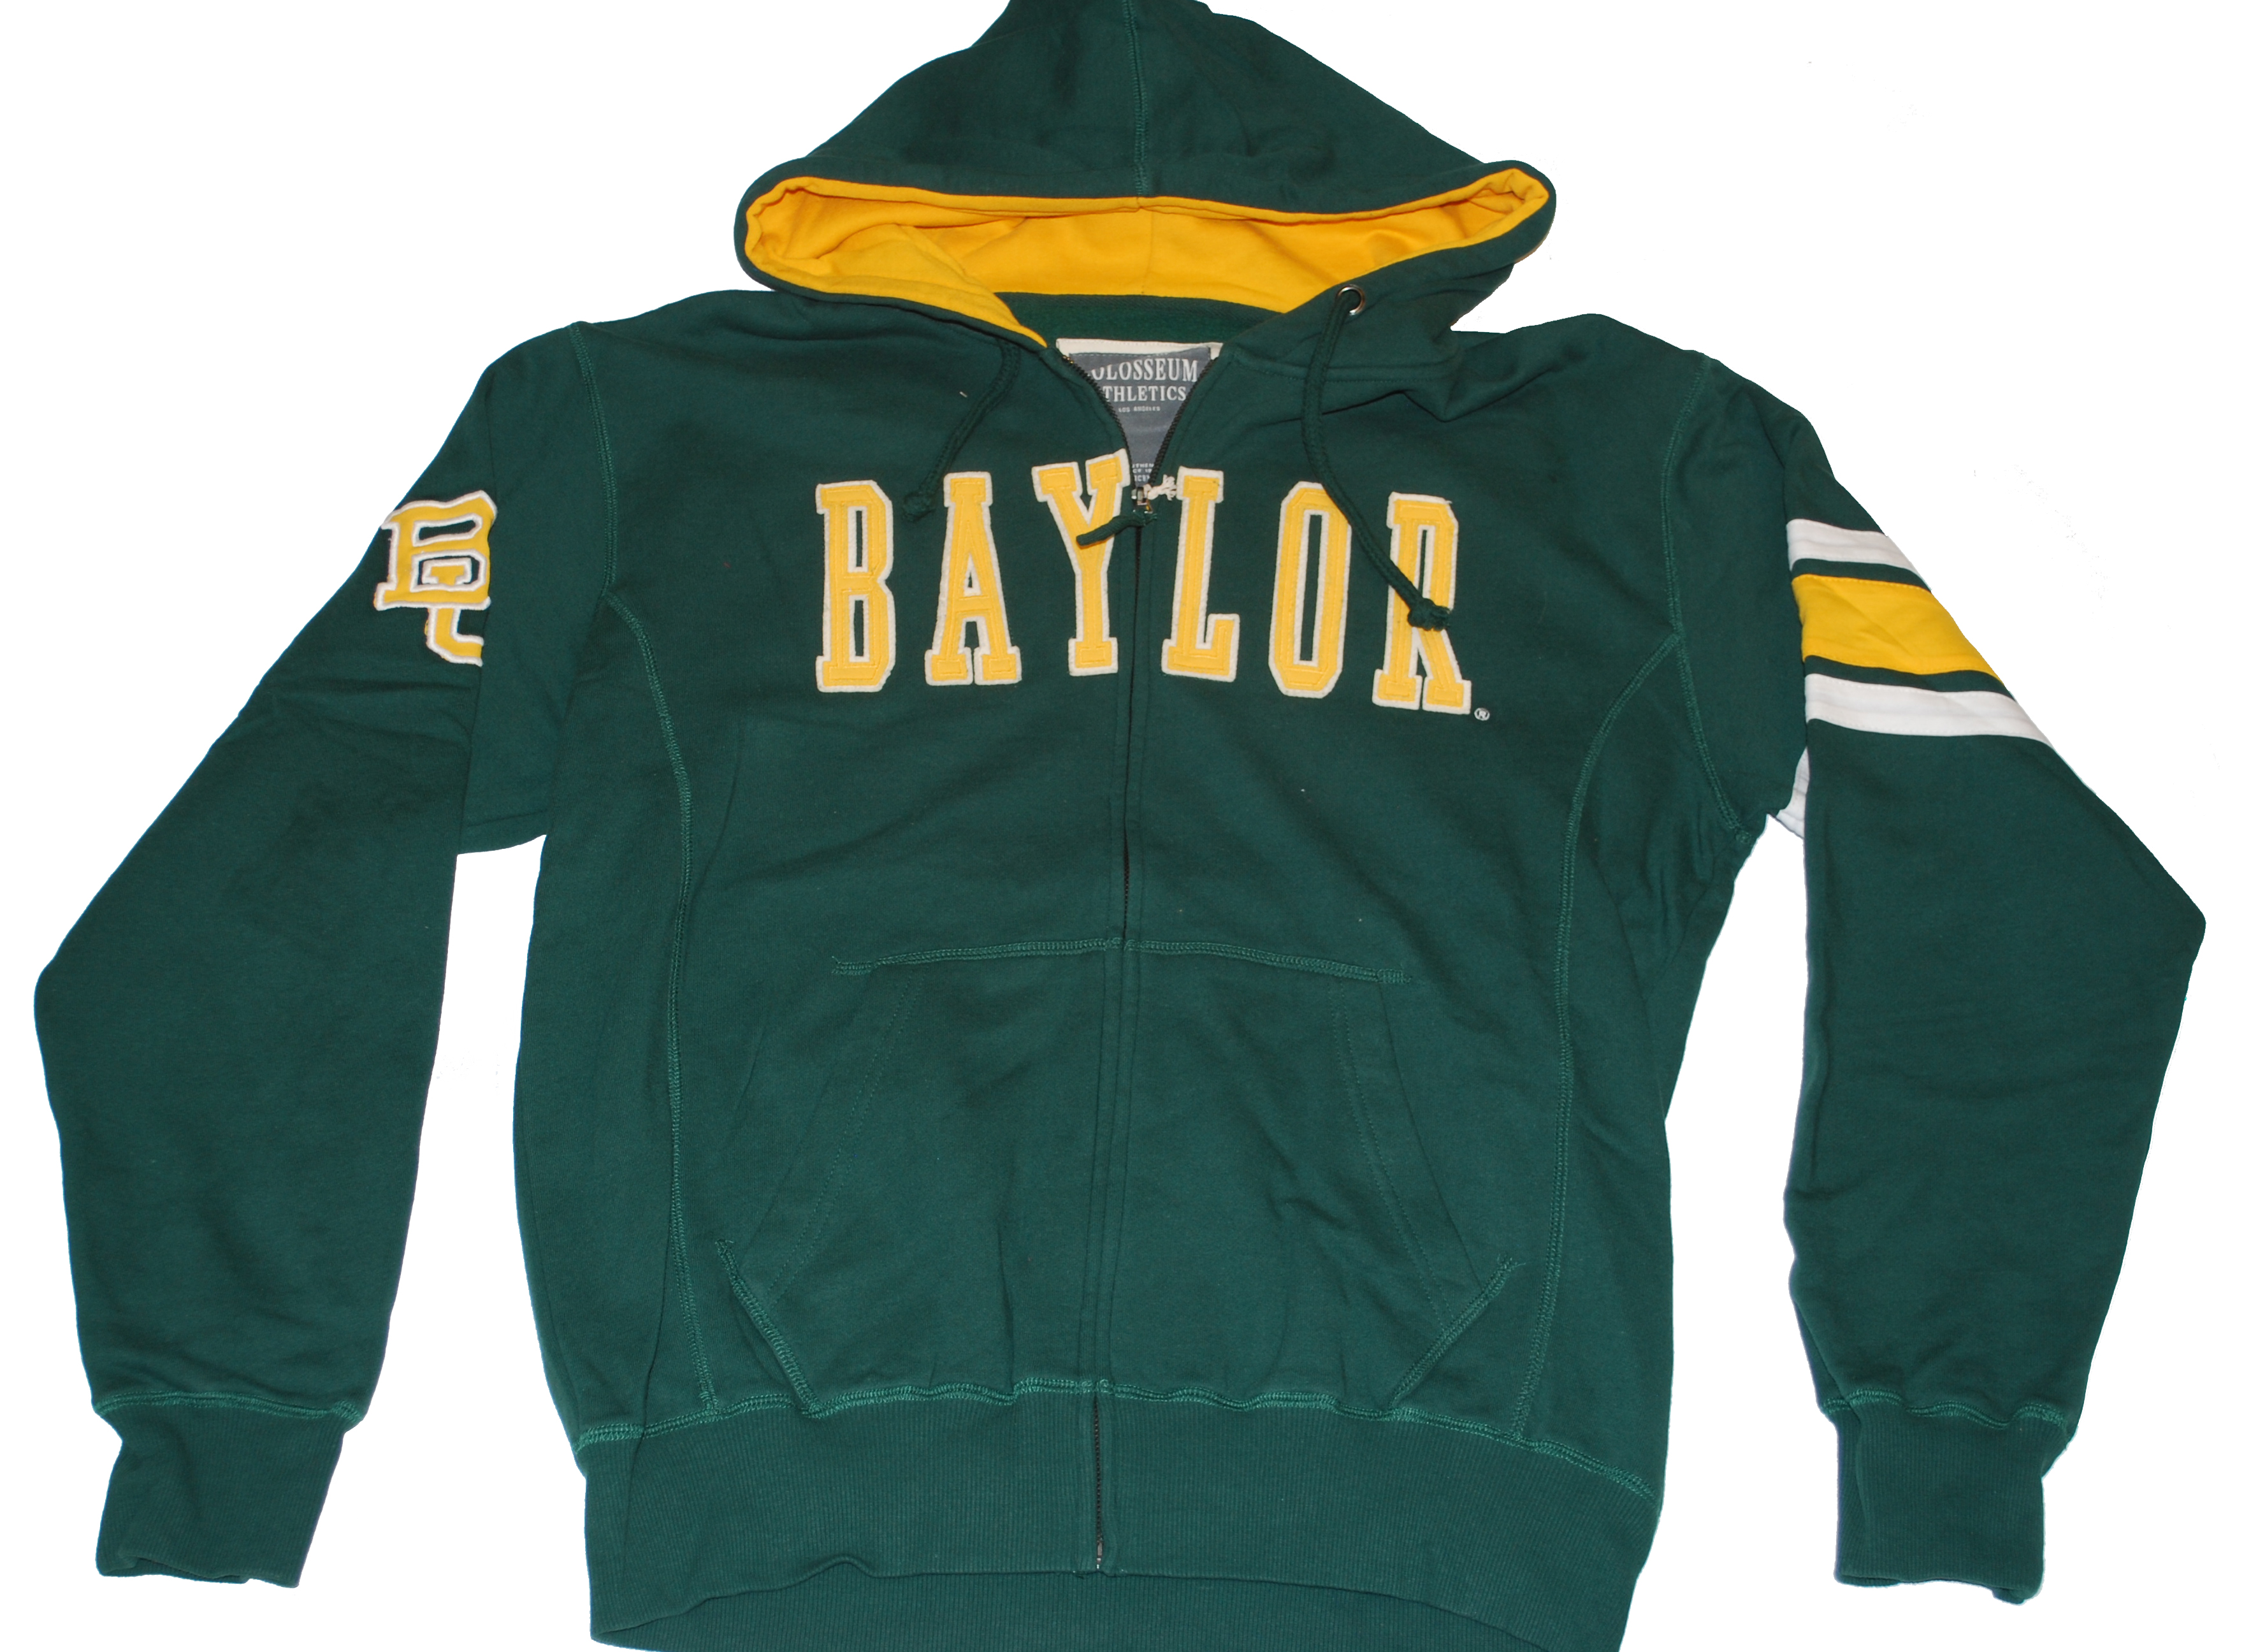 Colosseum Baylor Bears Colosseum Athletics Zip Up Hooded Green Sweatshirt Jacket (L) at Sears.com